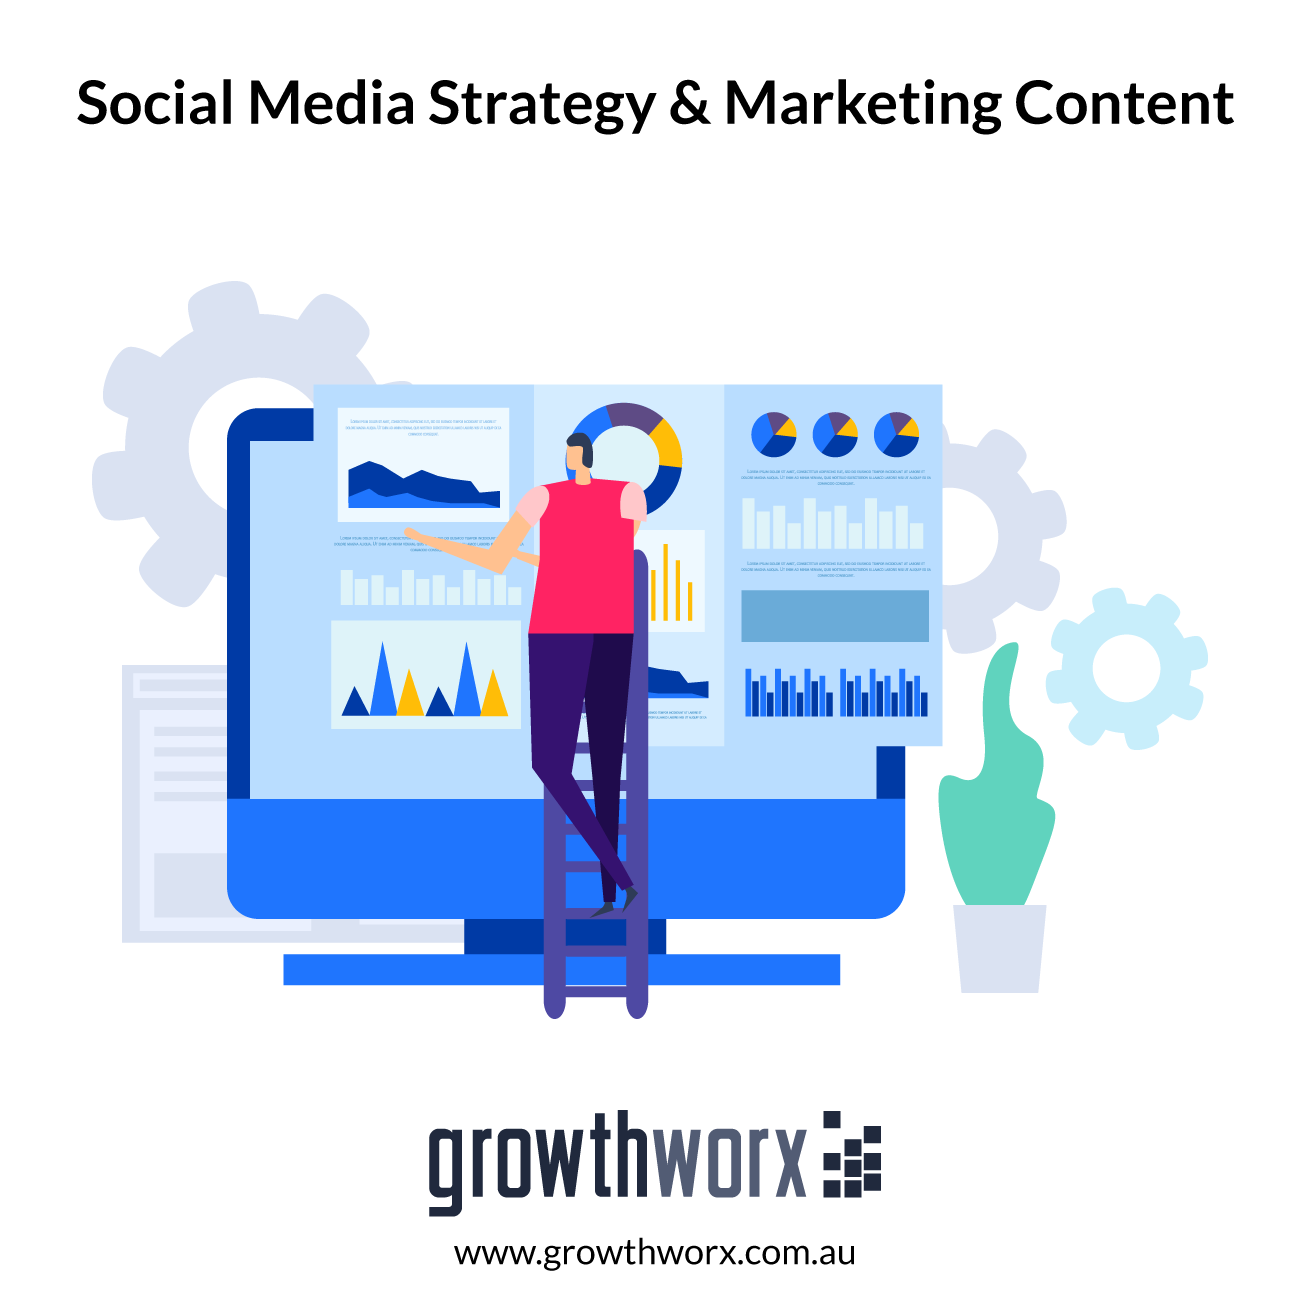 Create a lifestyle social media strategy and marketing content plan for a social media influencer 1